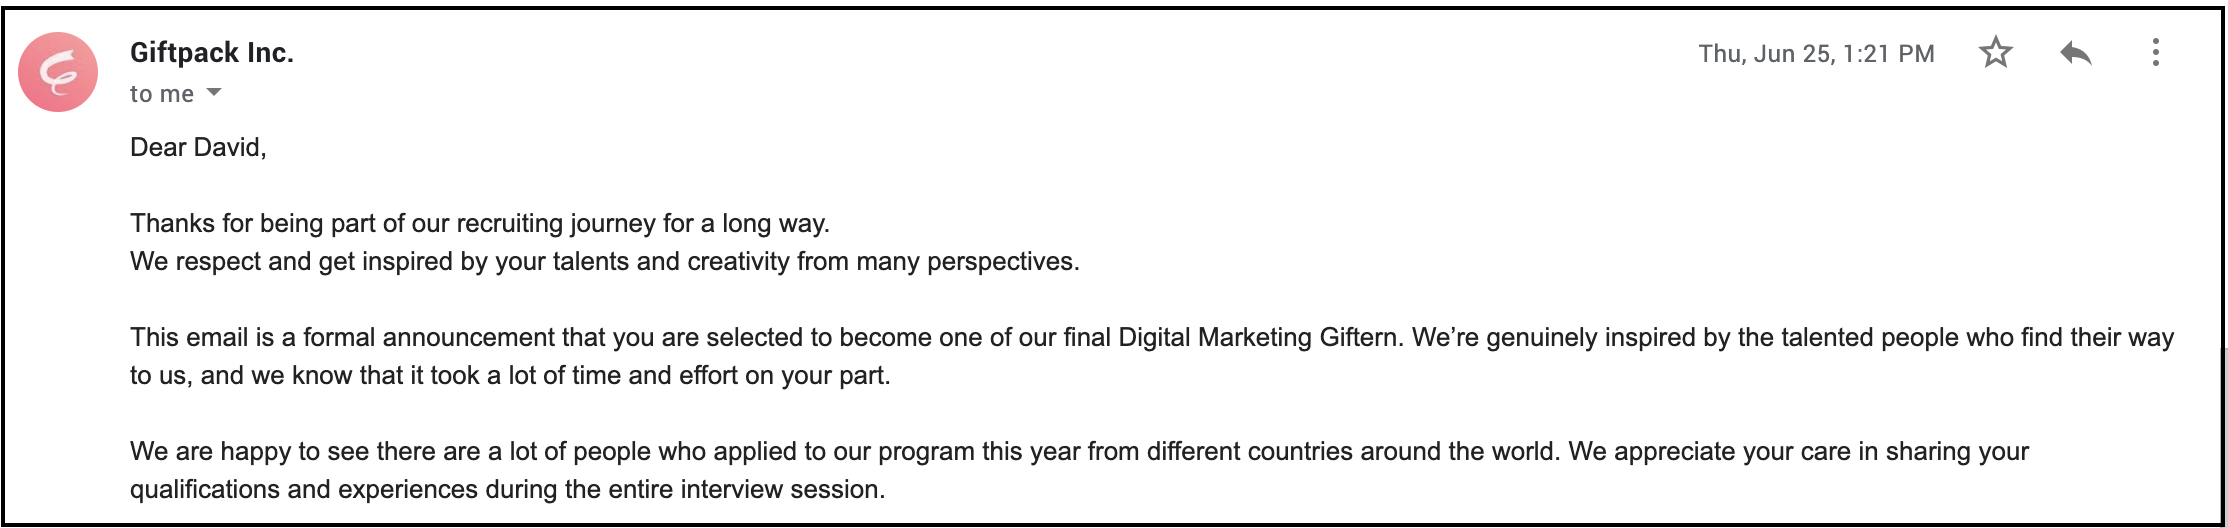 Digital Marketing Giftern的錄取通知信